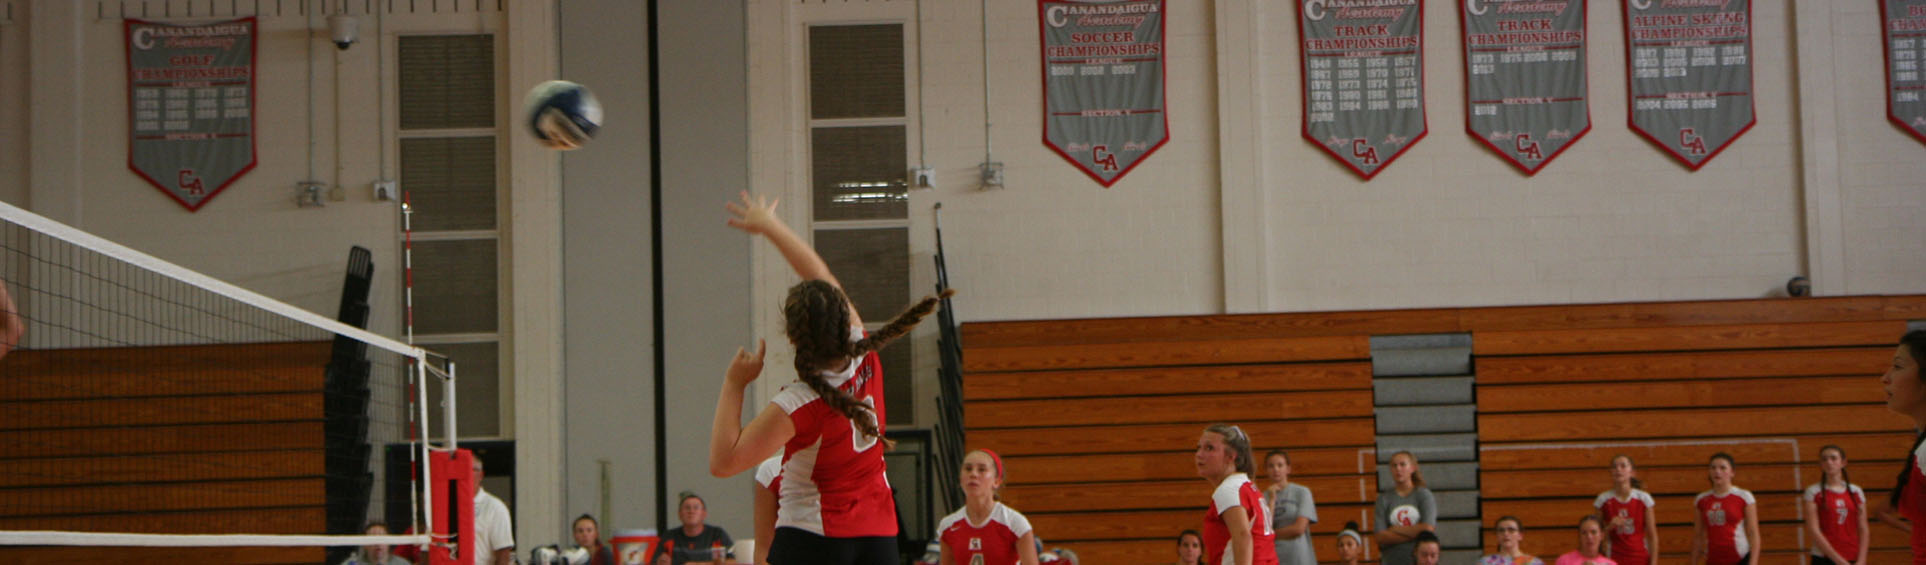 girl spiking the ball during a game